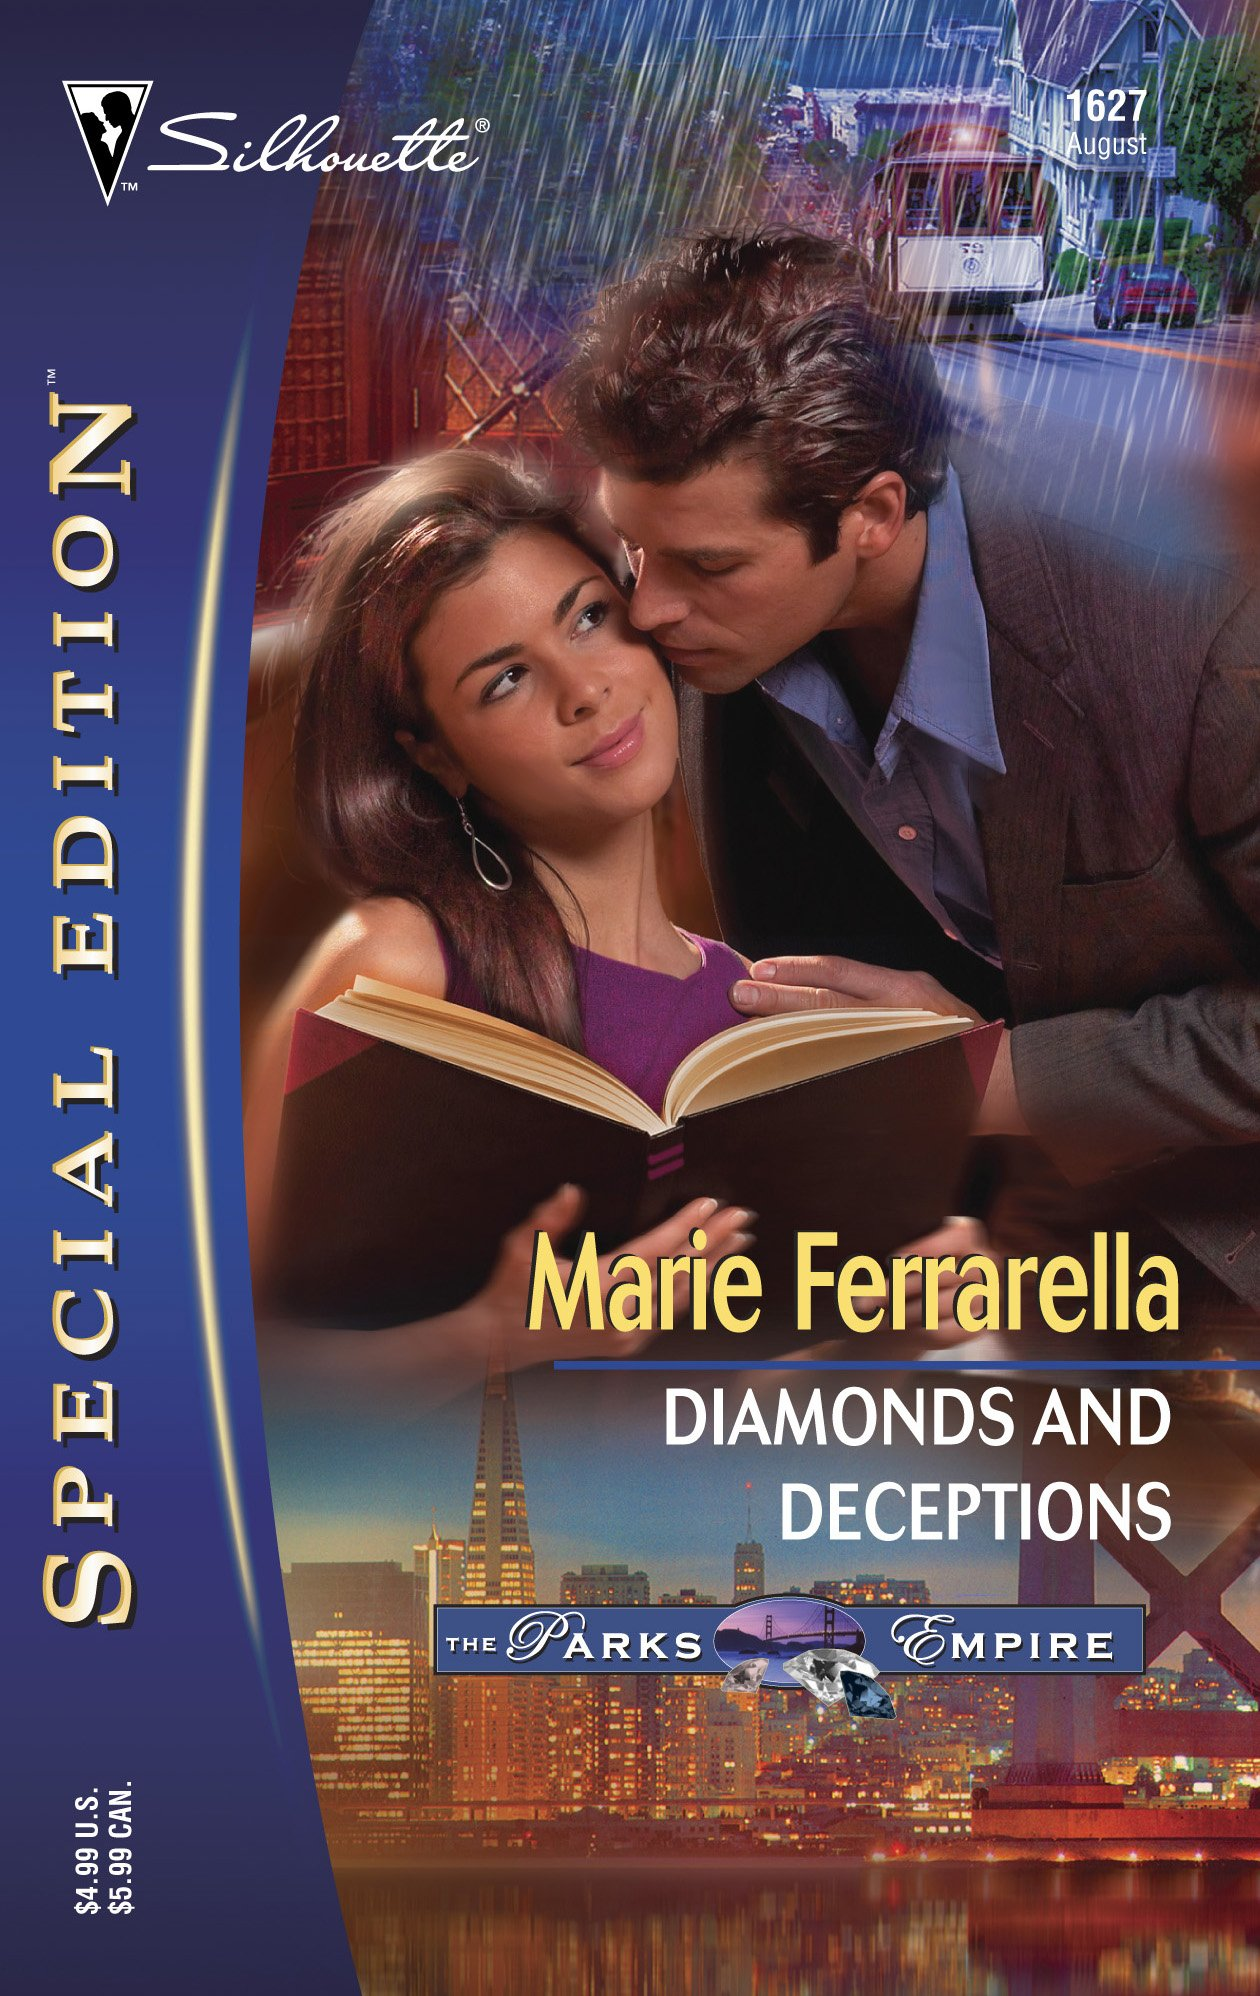 Diamonds and Deceptions: The Parks Empire (Silhouette Special Edition No. 1627) pdf epub